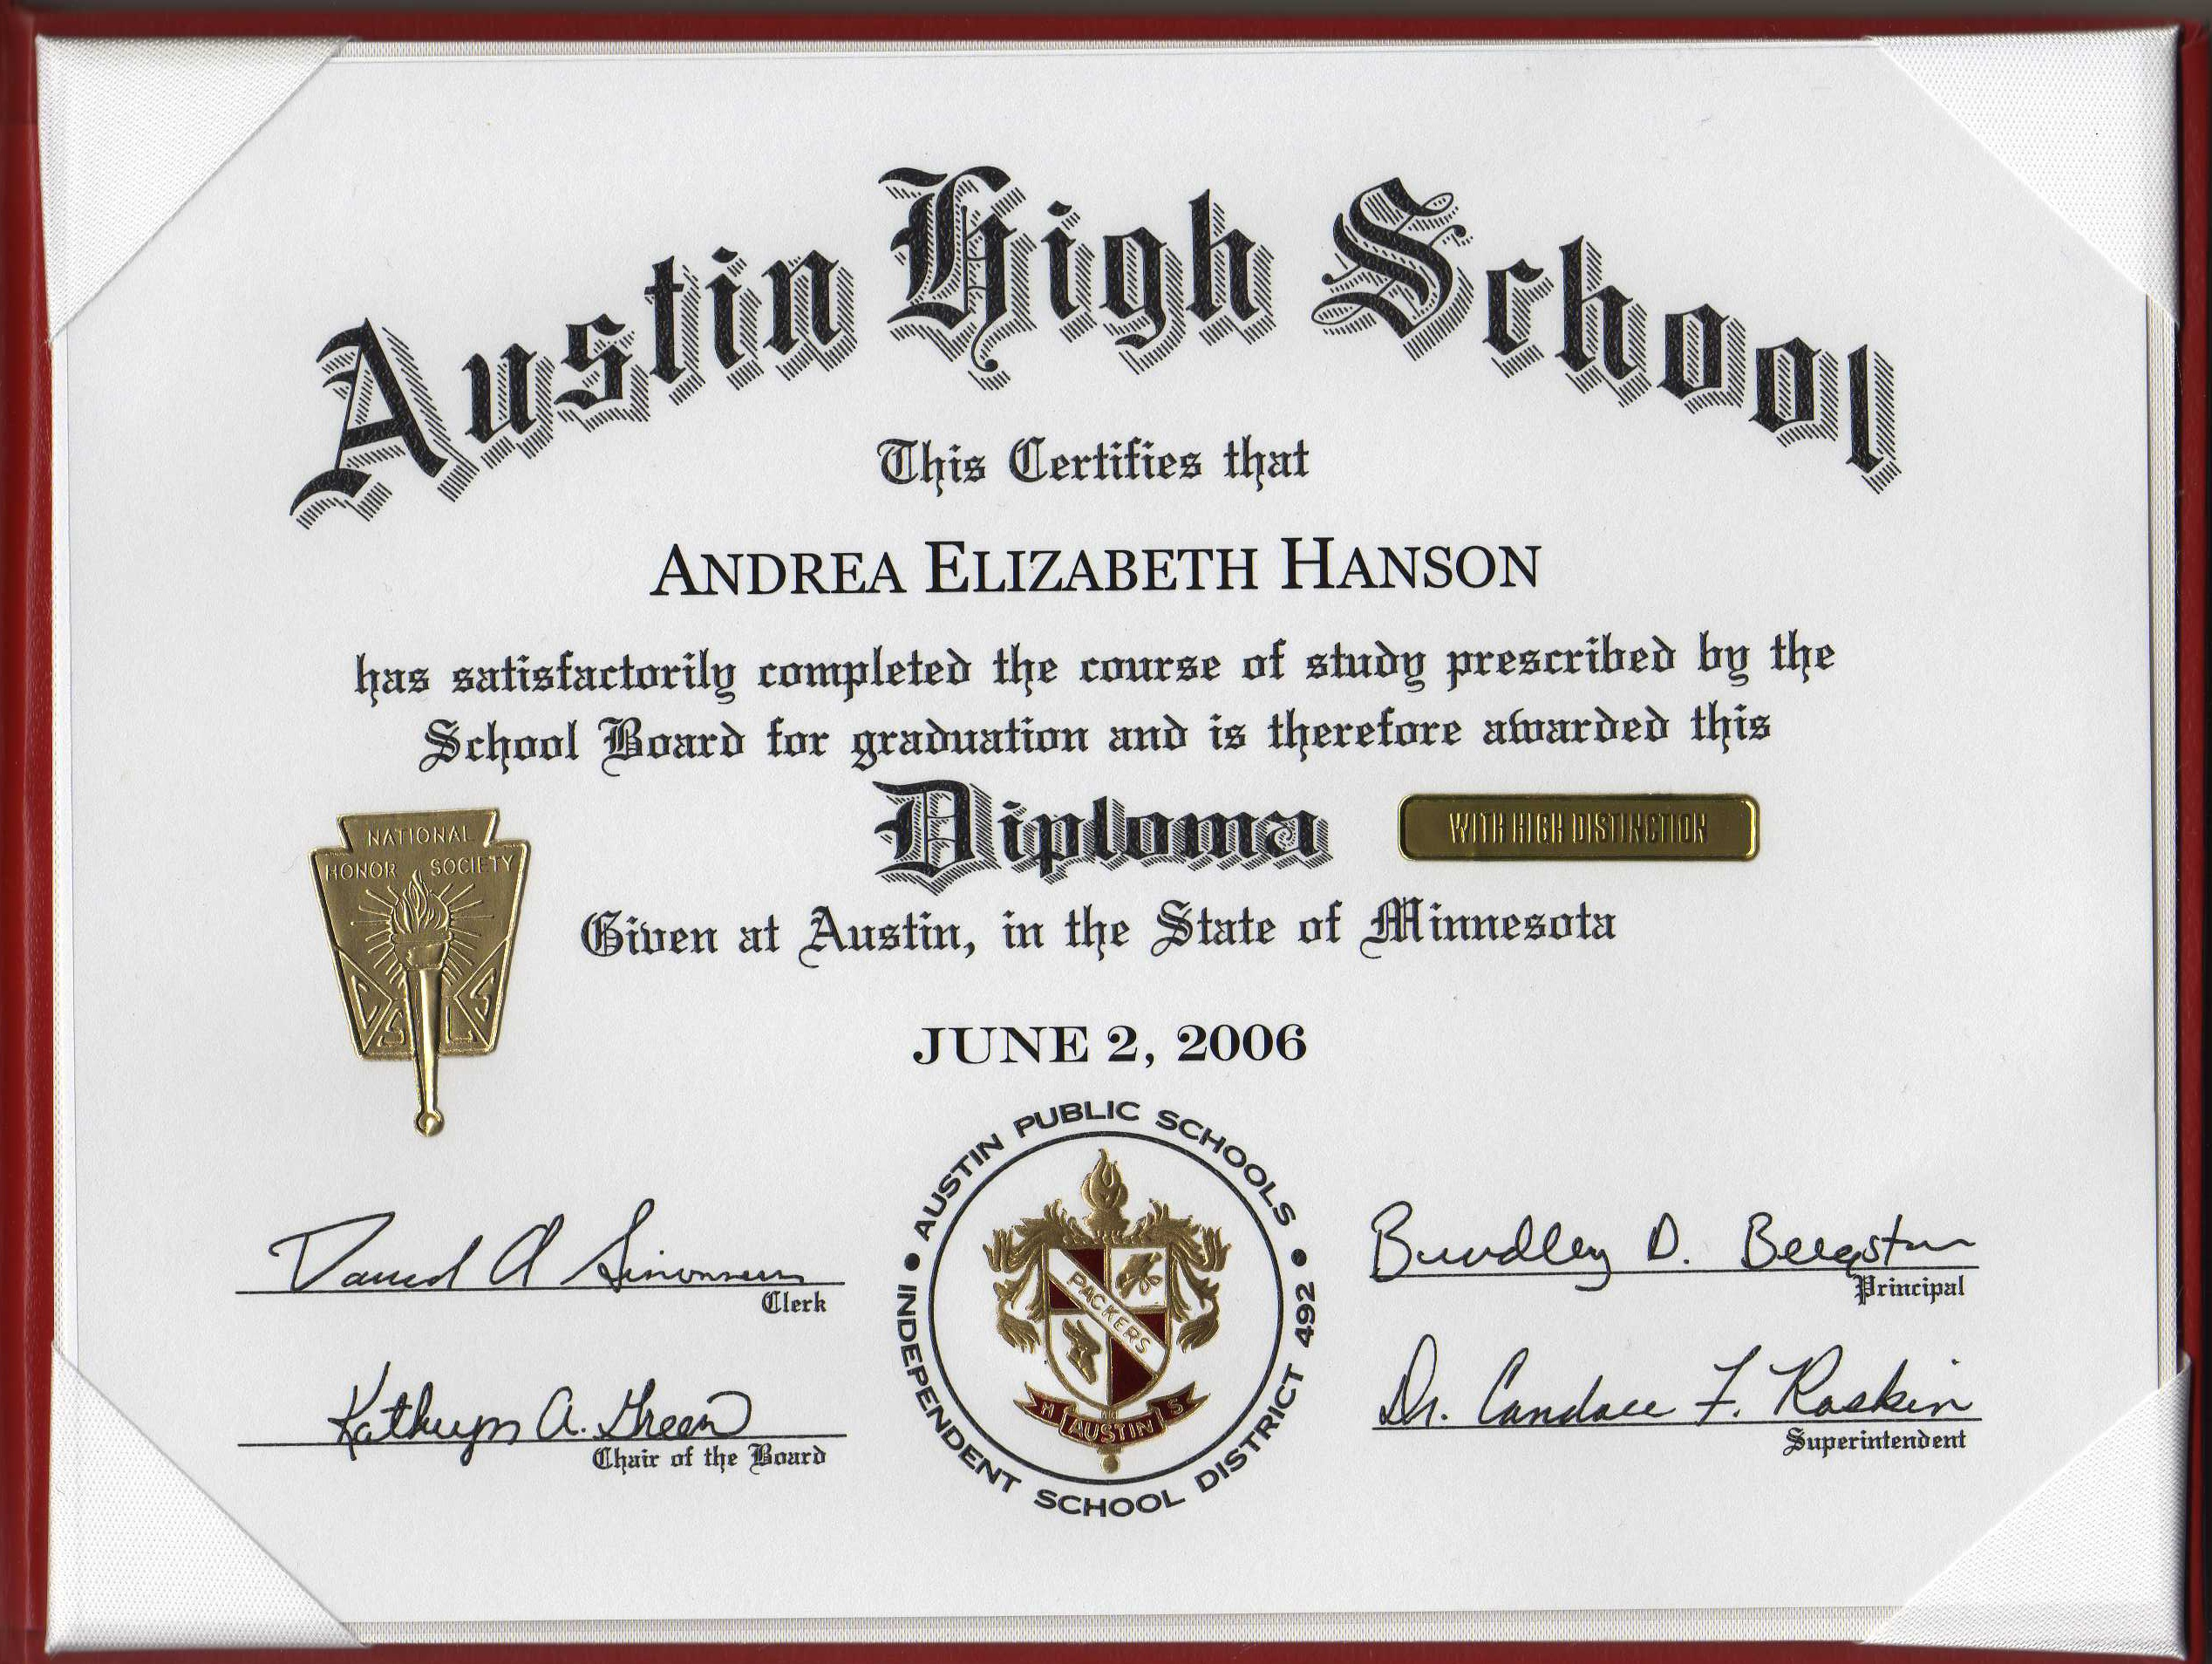 resume high school diploma sample customer service resume resume high school diploma high school student resume samples best sample resume awards and recognition andrea